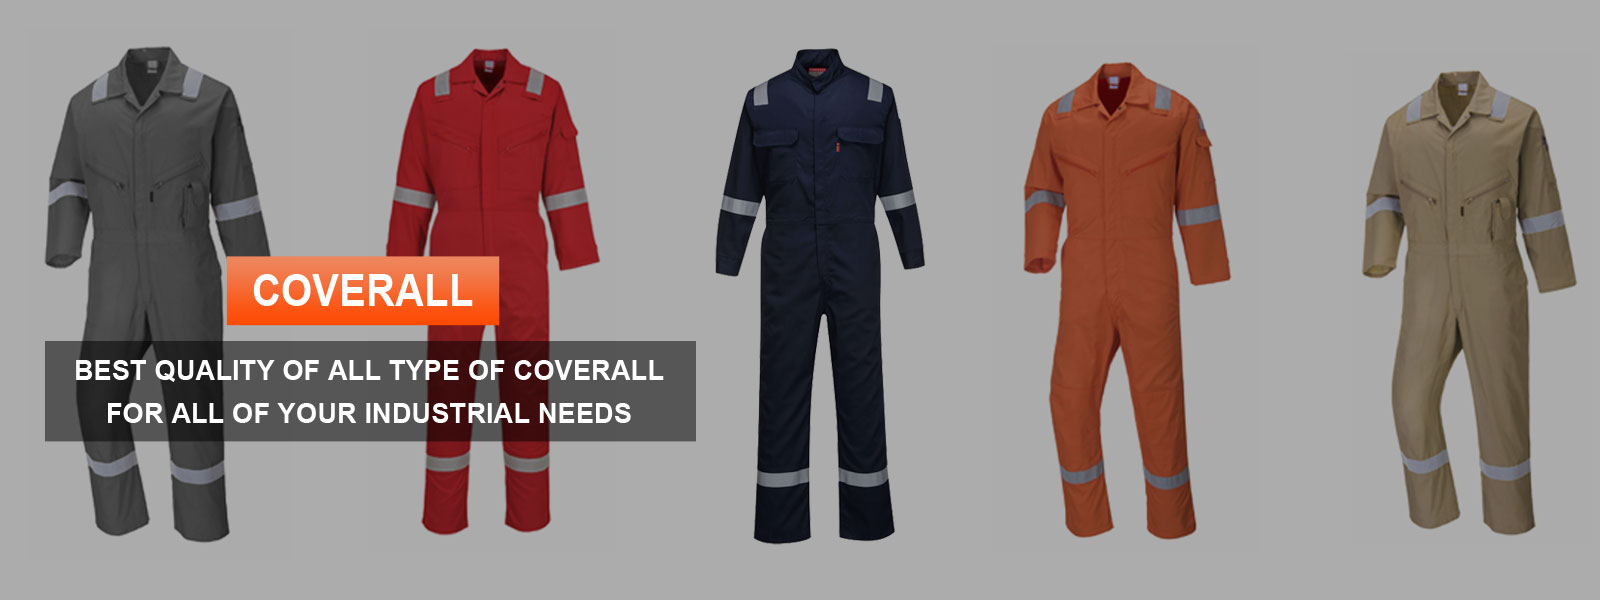 Coverall Manufacturers in Canada